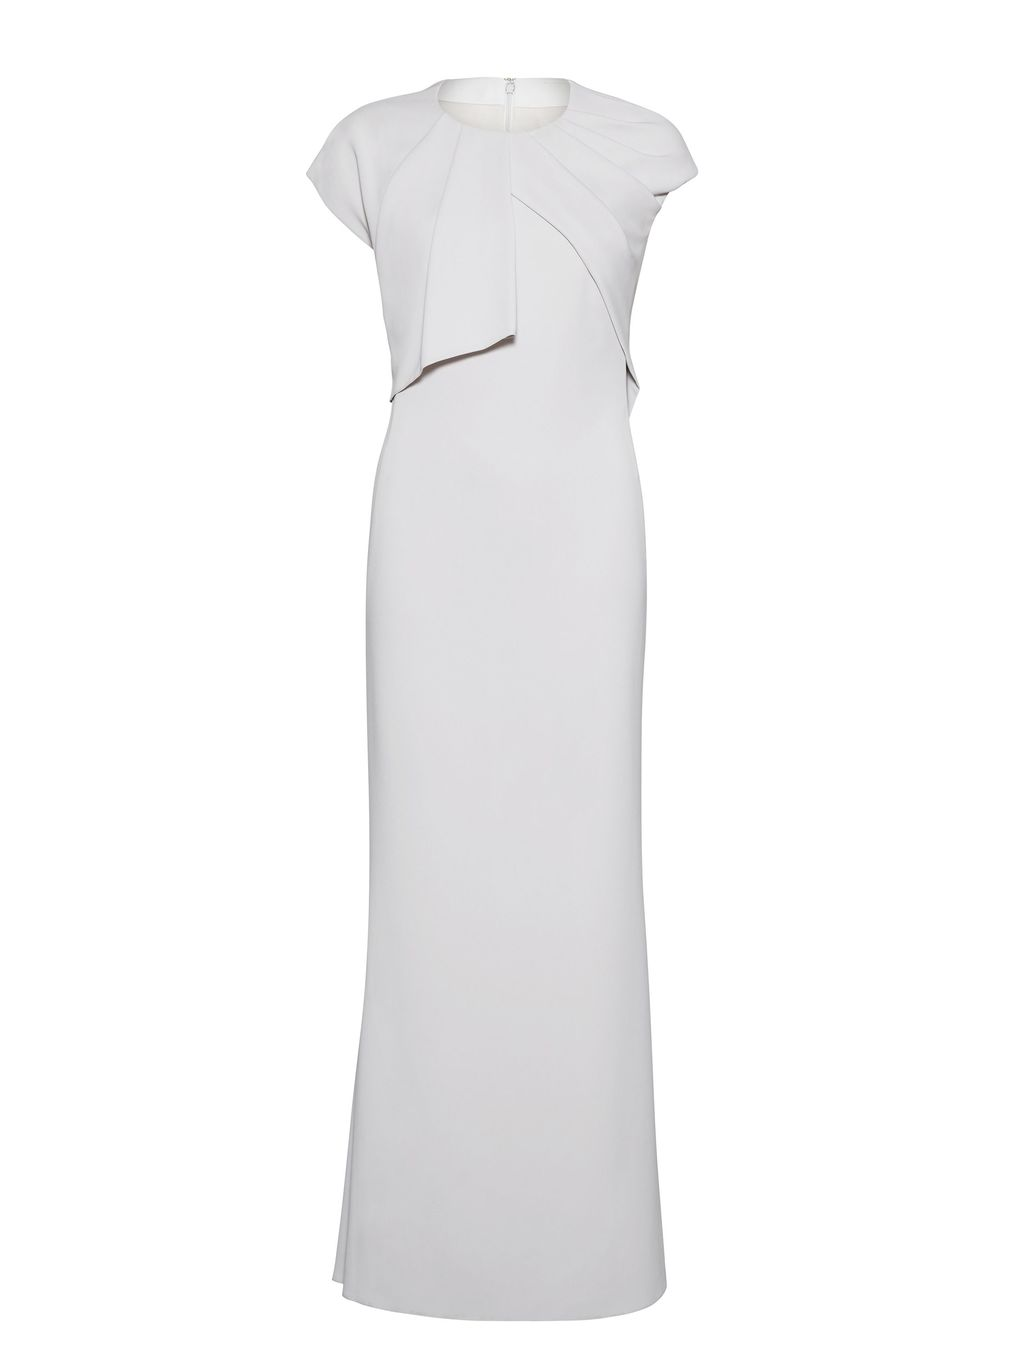 Stretch Moss Crepe Dress, Silver - sleeve style: capped; fit: tailored/fitted; pattern: plain; style: maxi dress; predominant colour: ivory/cream; length: floor length; fibres: polyester/polyamide - stretch; occasions: occasion; neckline: crew; sleeve length: short sleeve; texture group: crepes; pattern type: fabric; season: s/s 2016; wardrobe: event